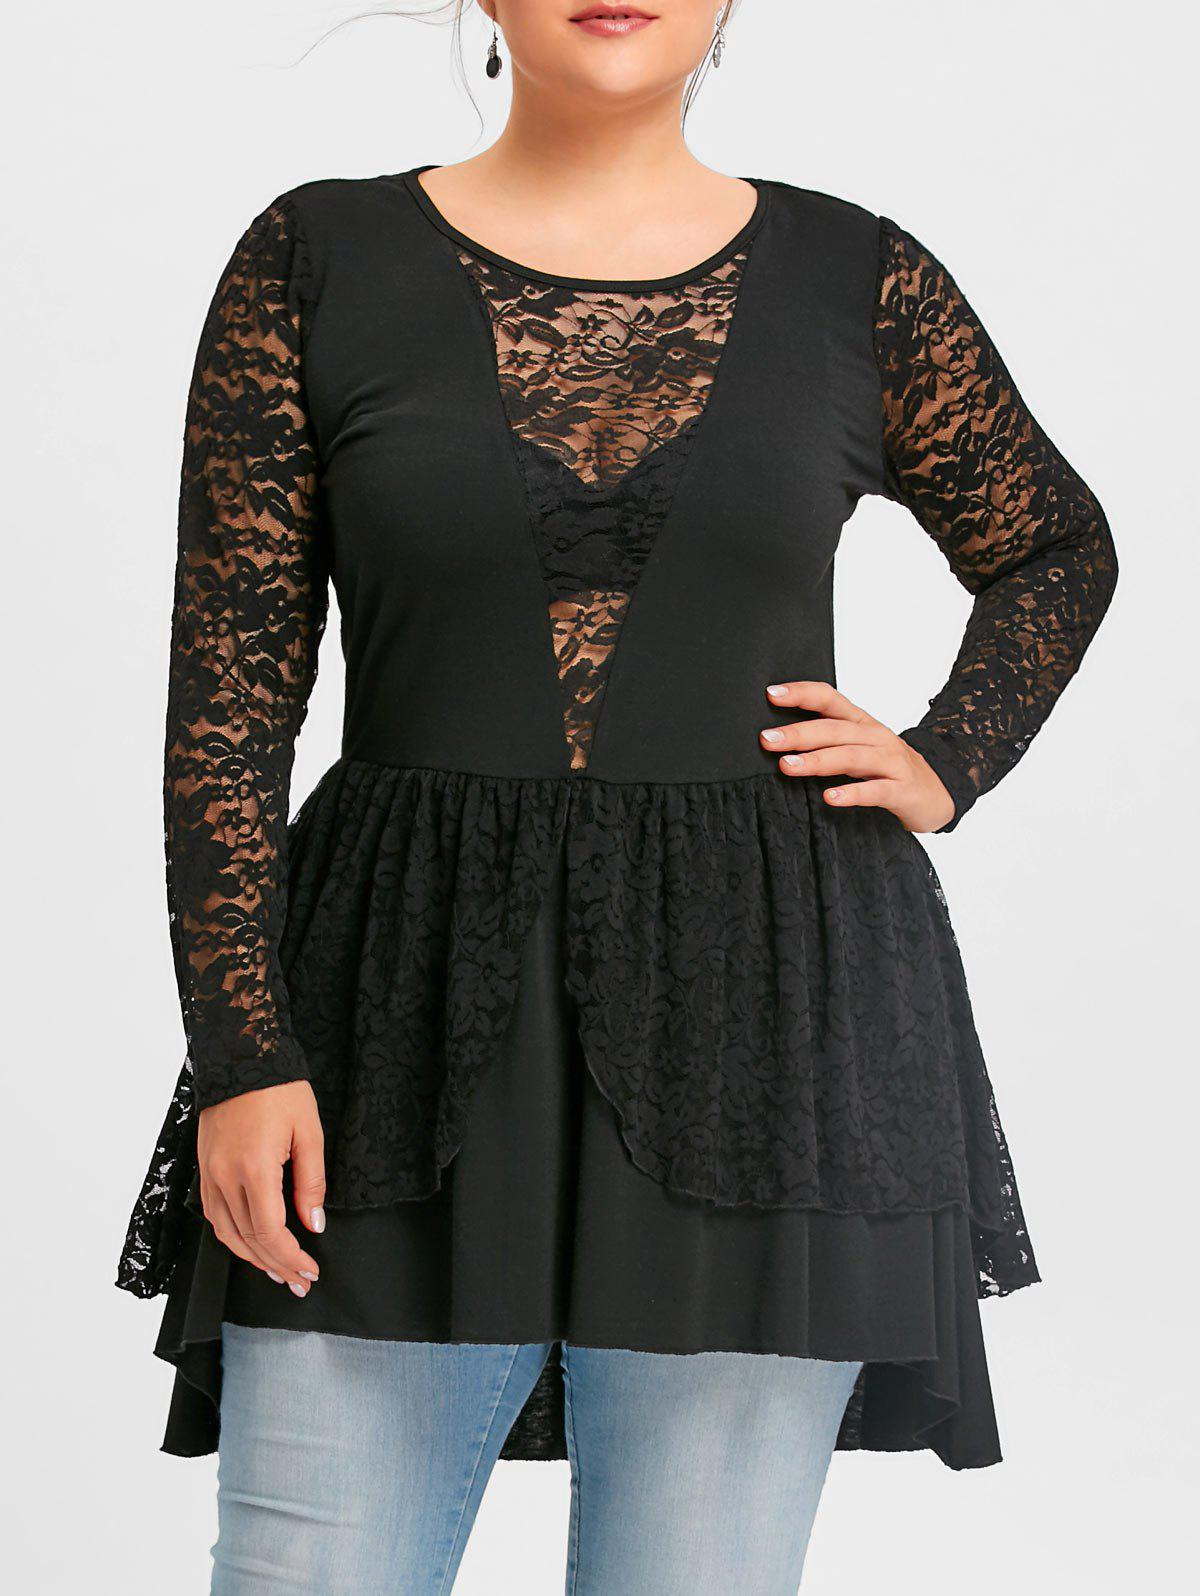 Plus Size Lace Trim Layered Peplum TopWOMEN<br><br>Size: 2XL; Color: BLACK; Material: Polyester,Spandex; Shirt Length: Long; Sleeve Length: Full; Collar: Round Neck; Style: Fashion; Season: Fall,Spring; Embellishment: Lace; Pattern Type: Floral; Weight: 0.3700kg; Package Contents: 1 x Top;